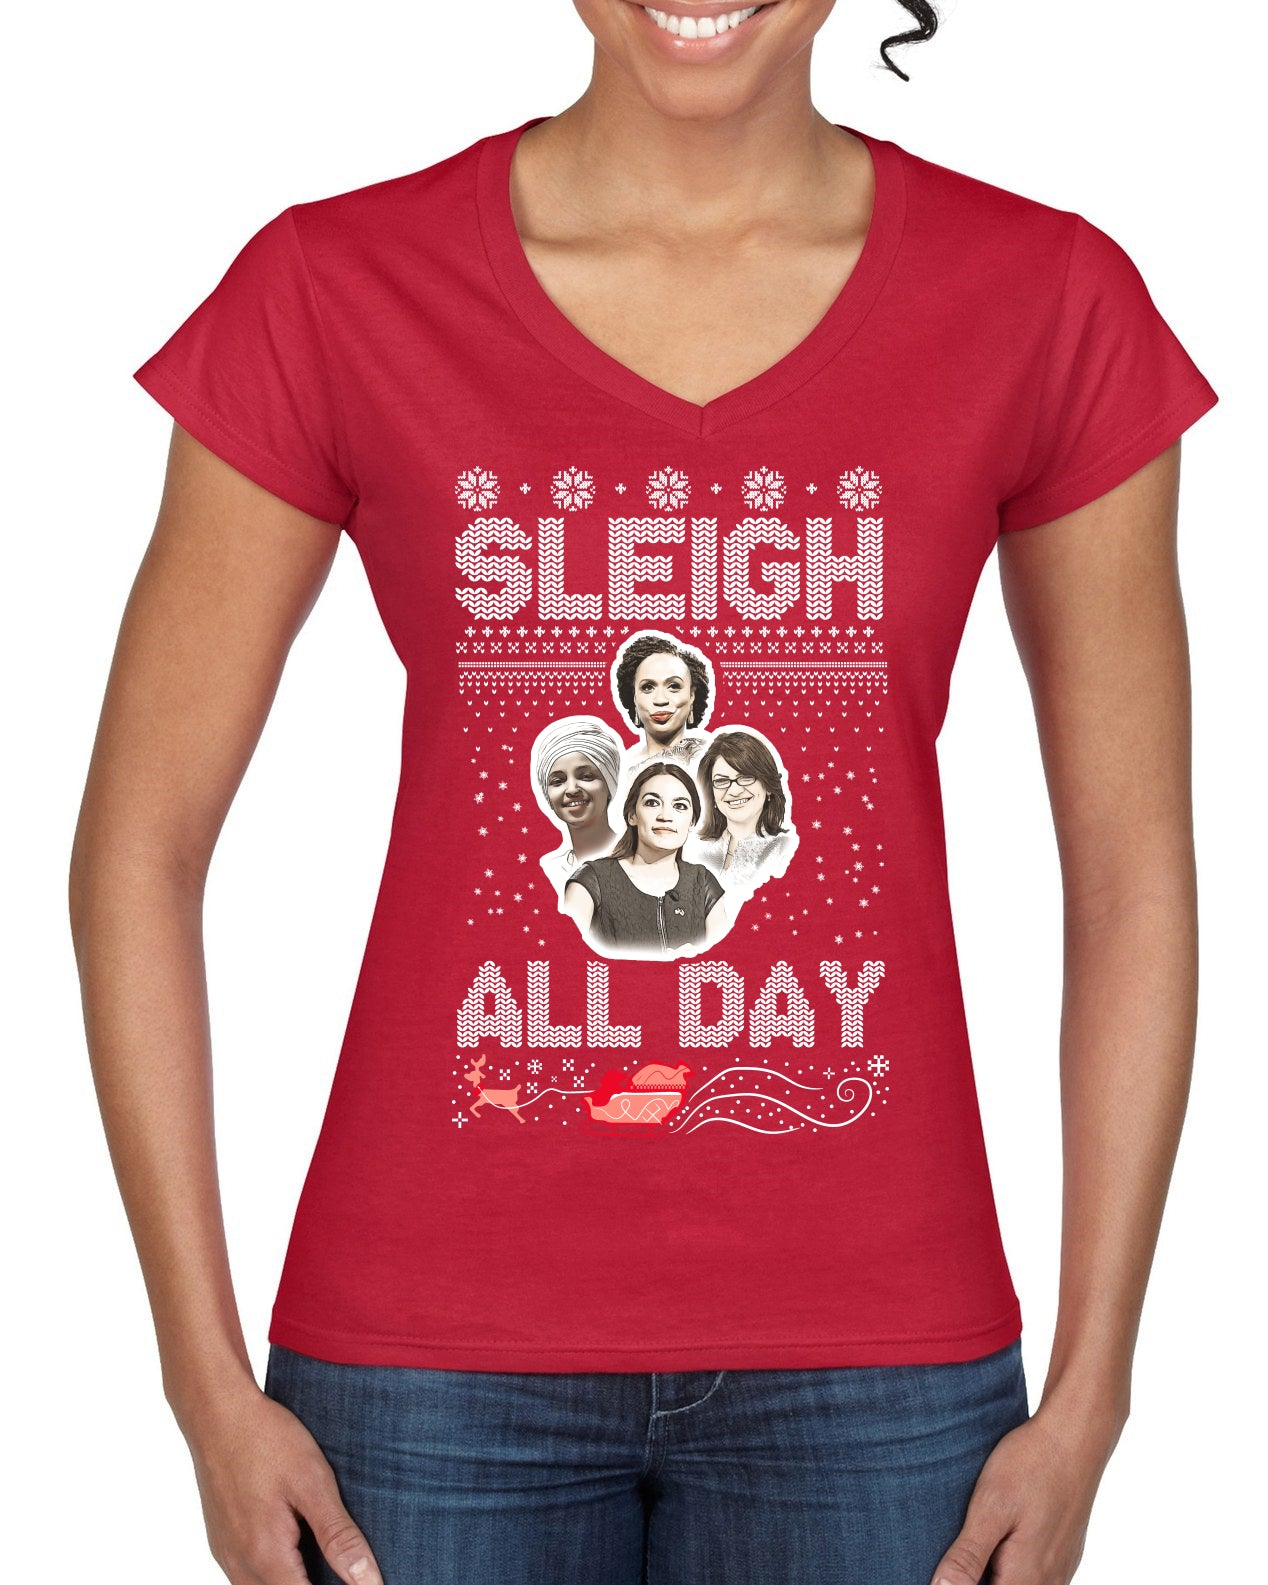 AOC The Squad Congresswomen Sleigh All Day Xmas Ugly Christmas Sweater Women's Standard V-Neck Tee